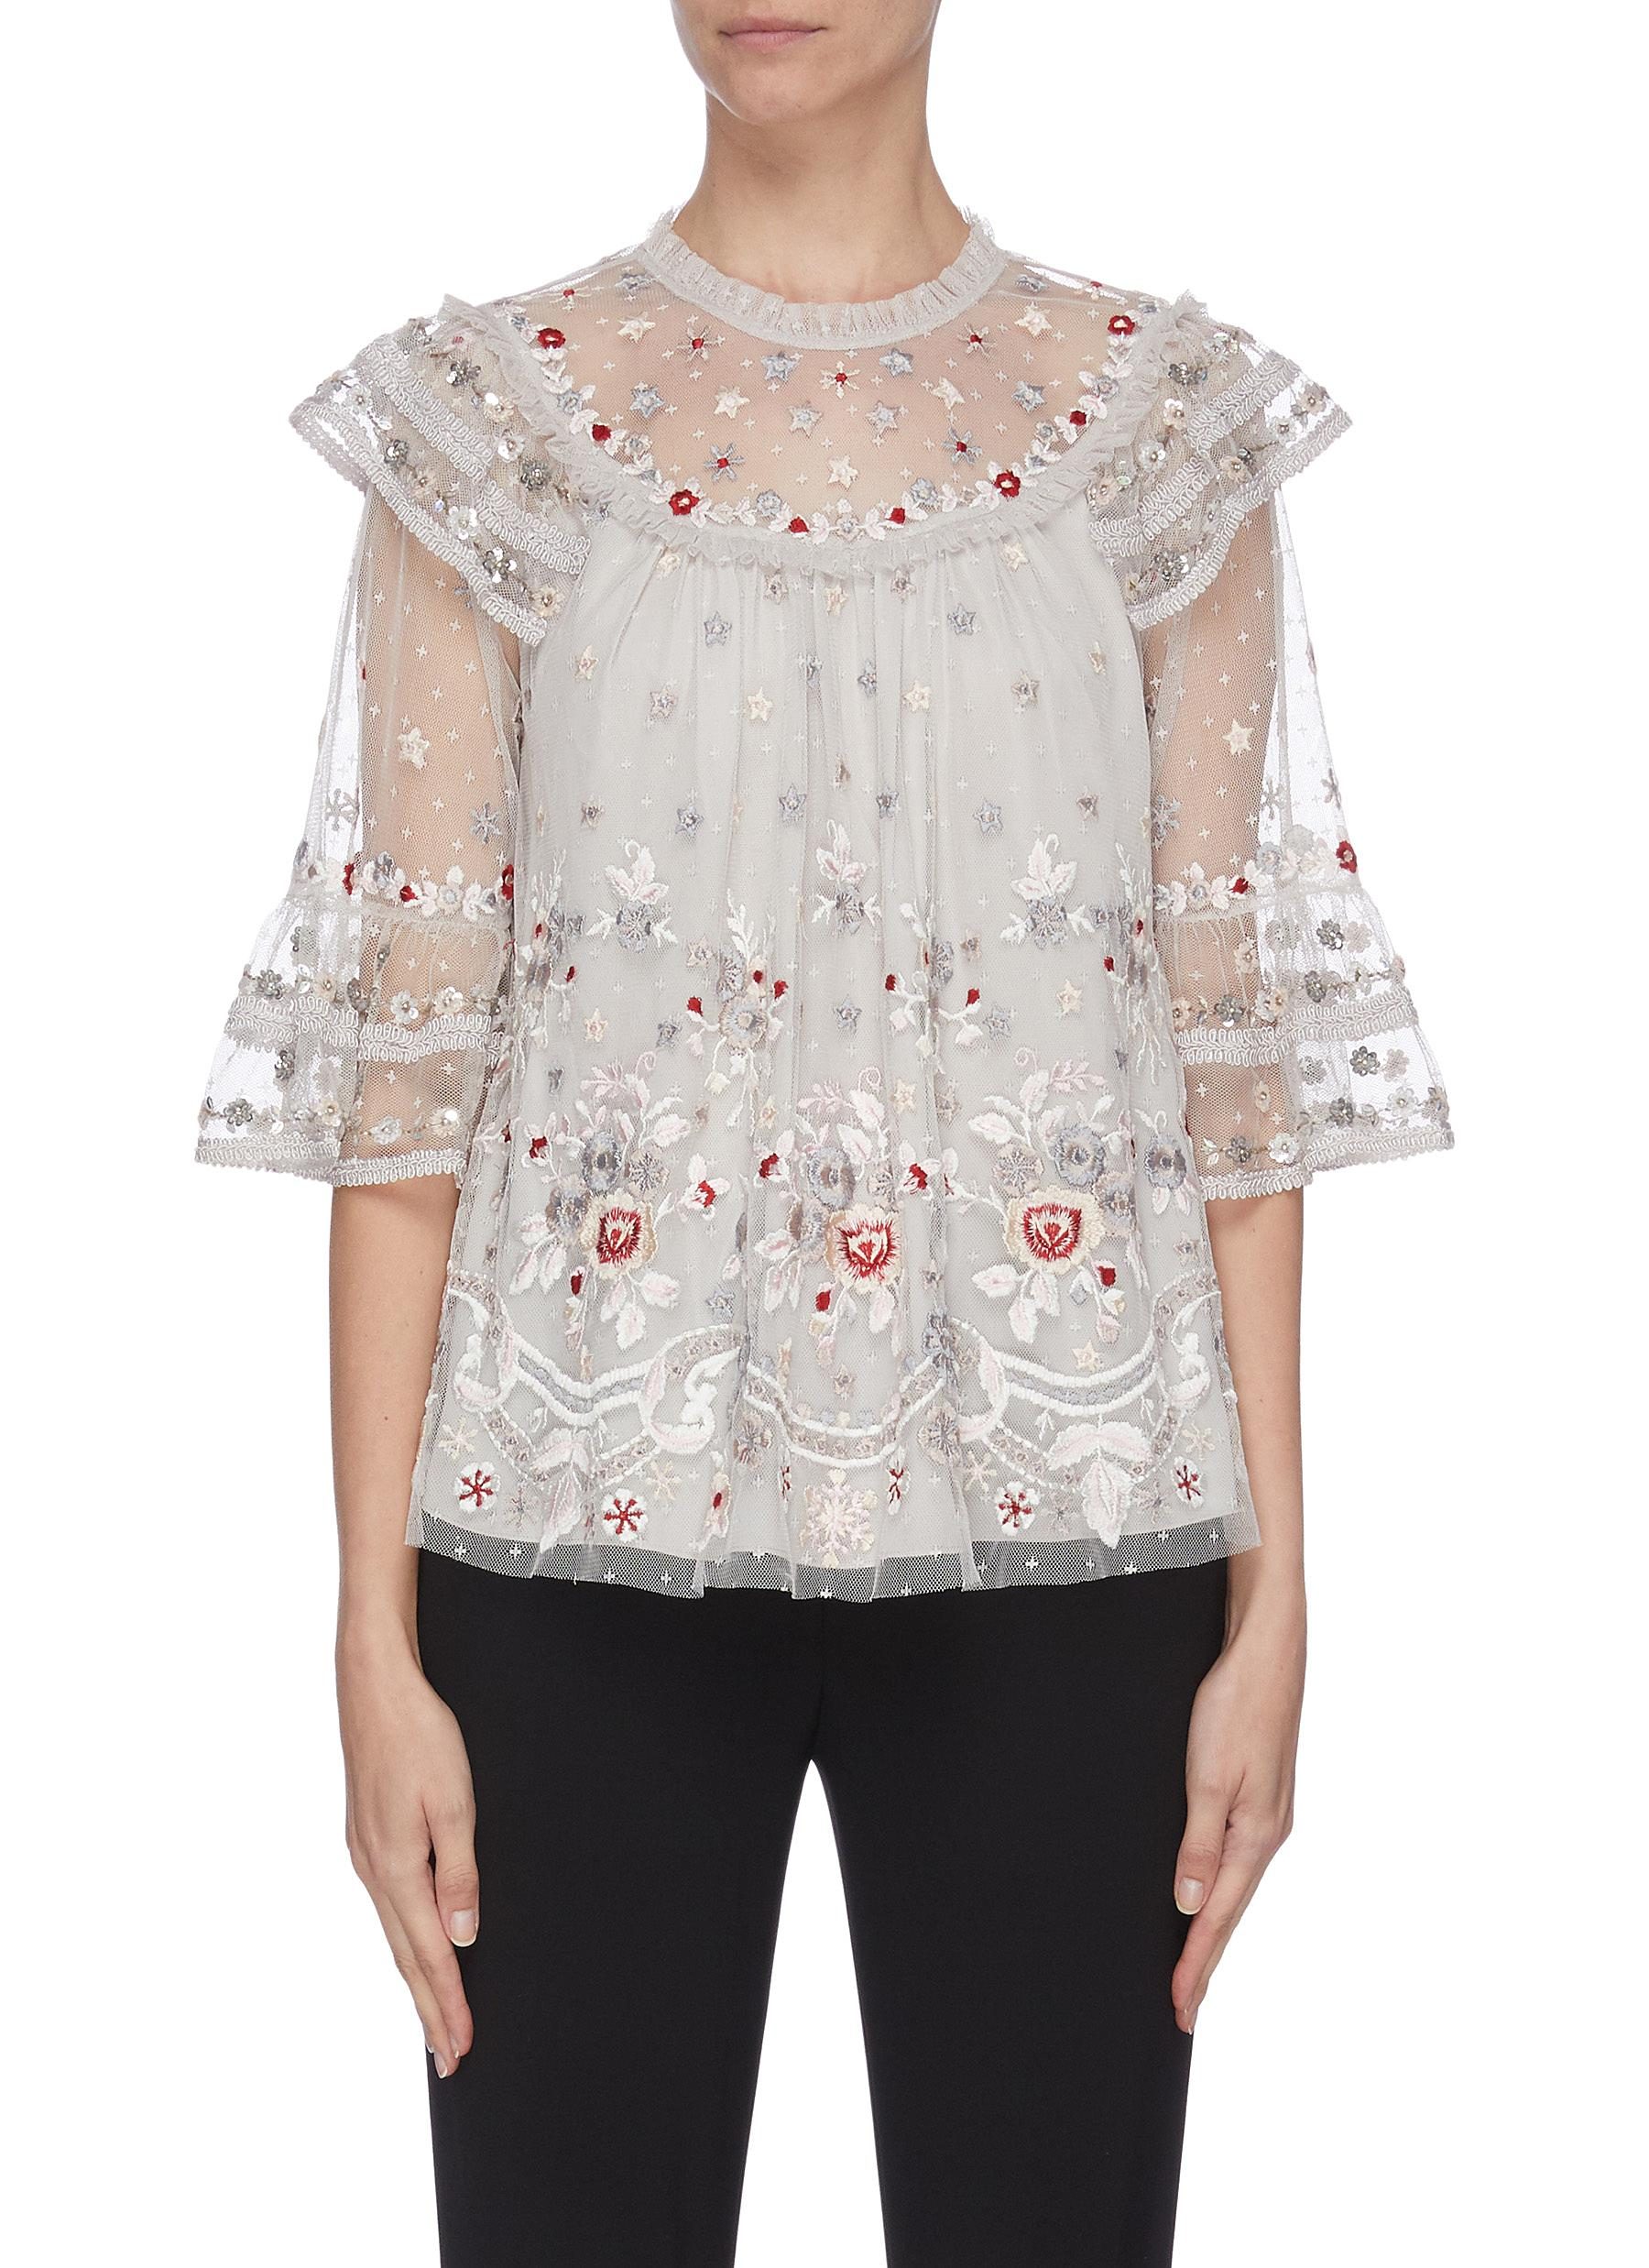 Buy Needle & Thread Tops 'Eden' floral embroidered sequin embellished lace trim ruffle flared tulle top